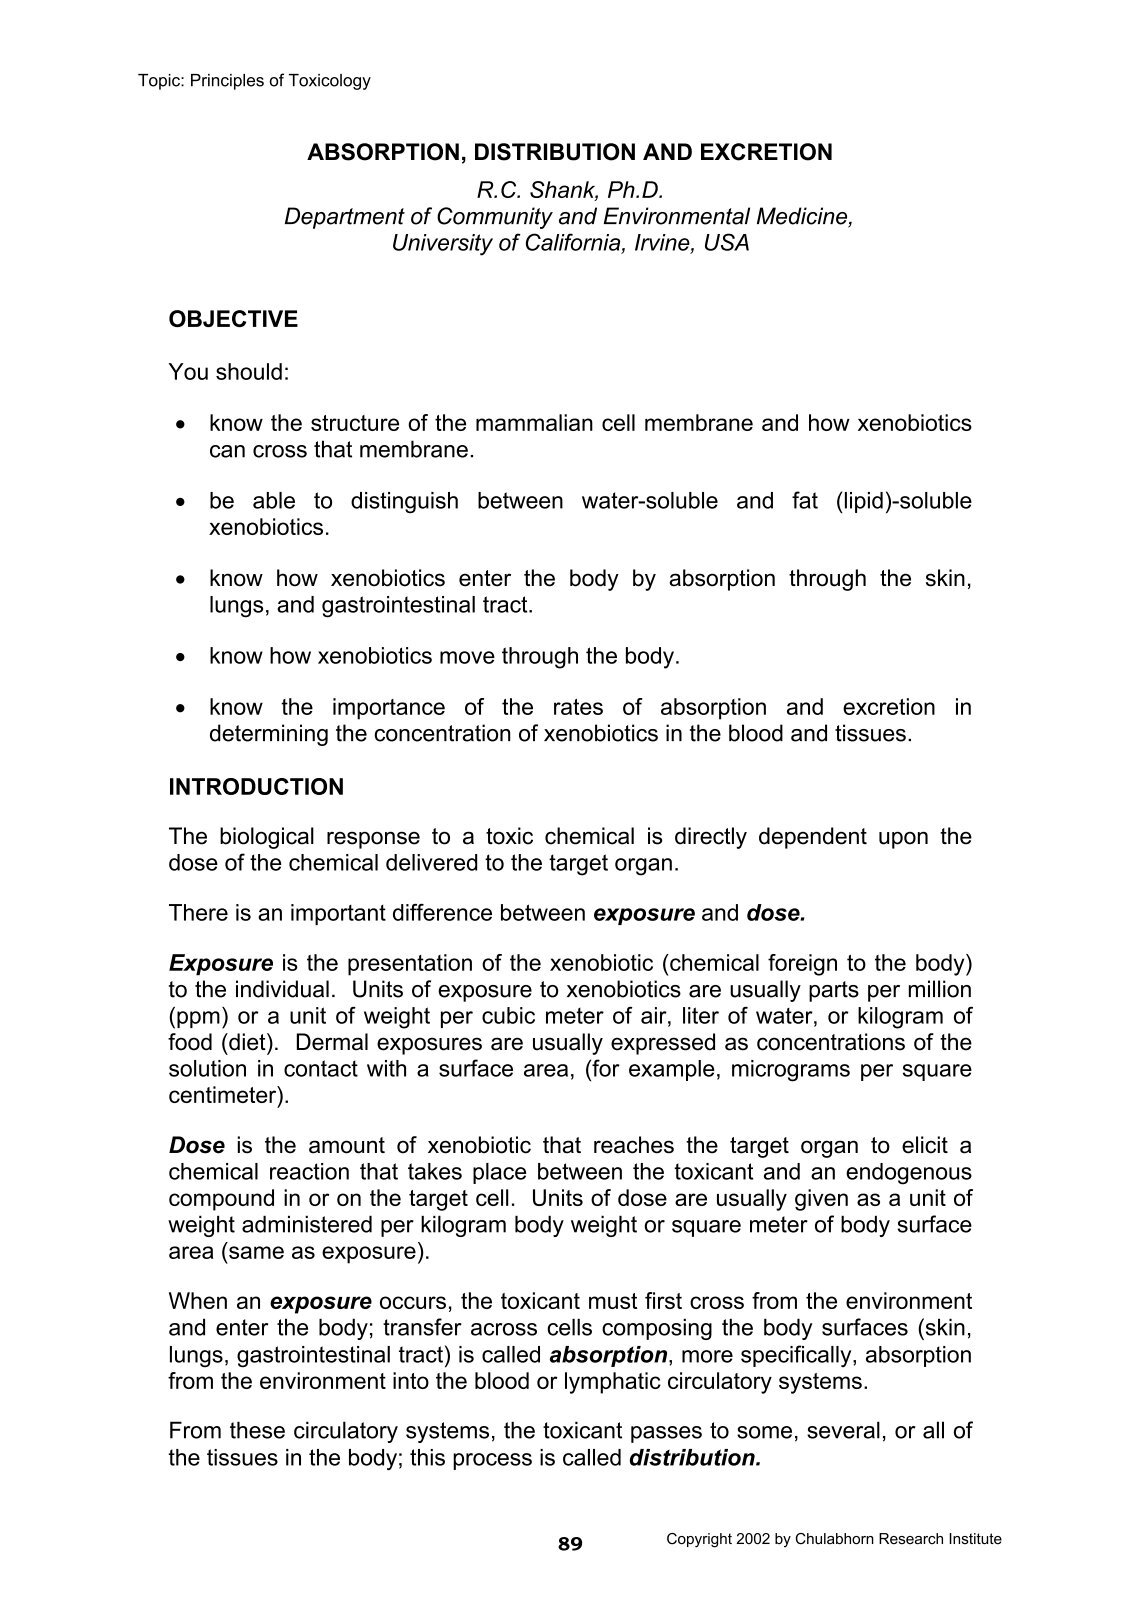 essay types expository lined paper